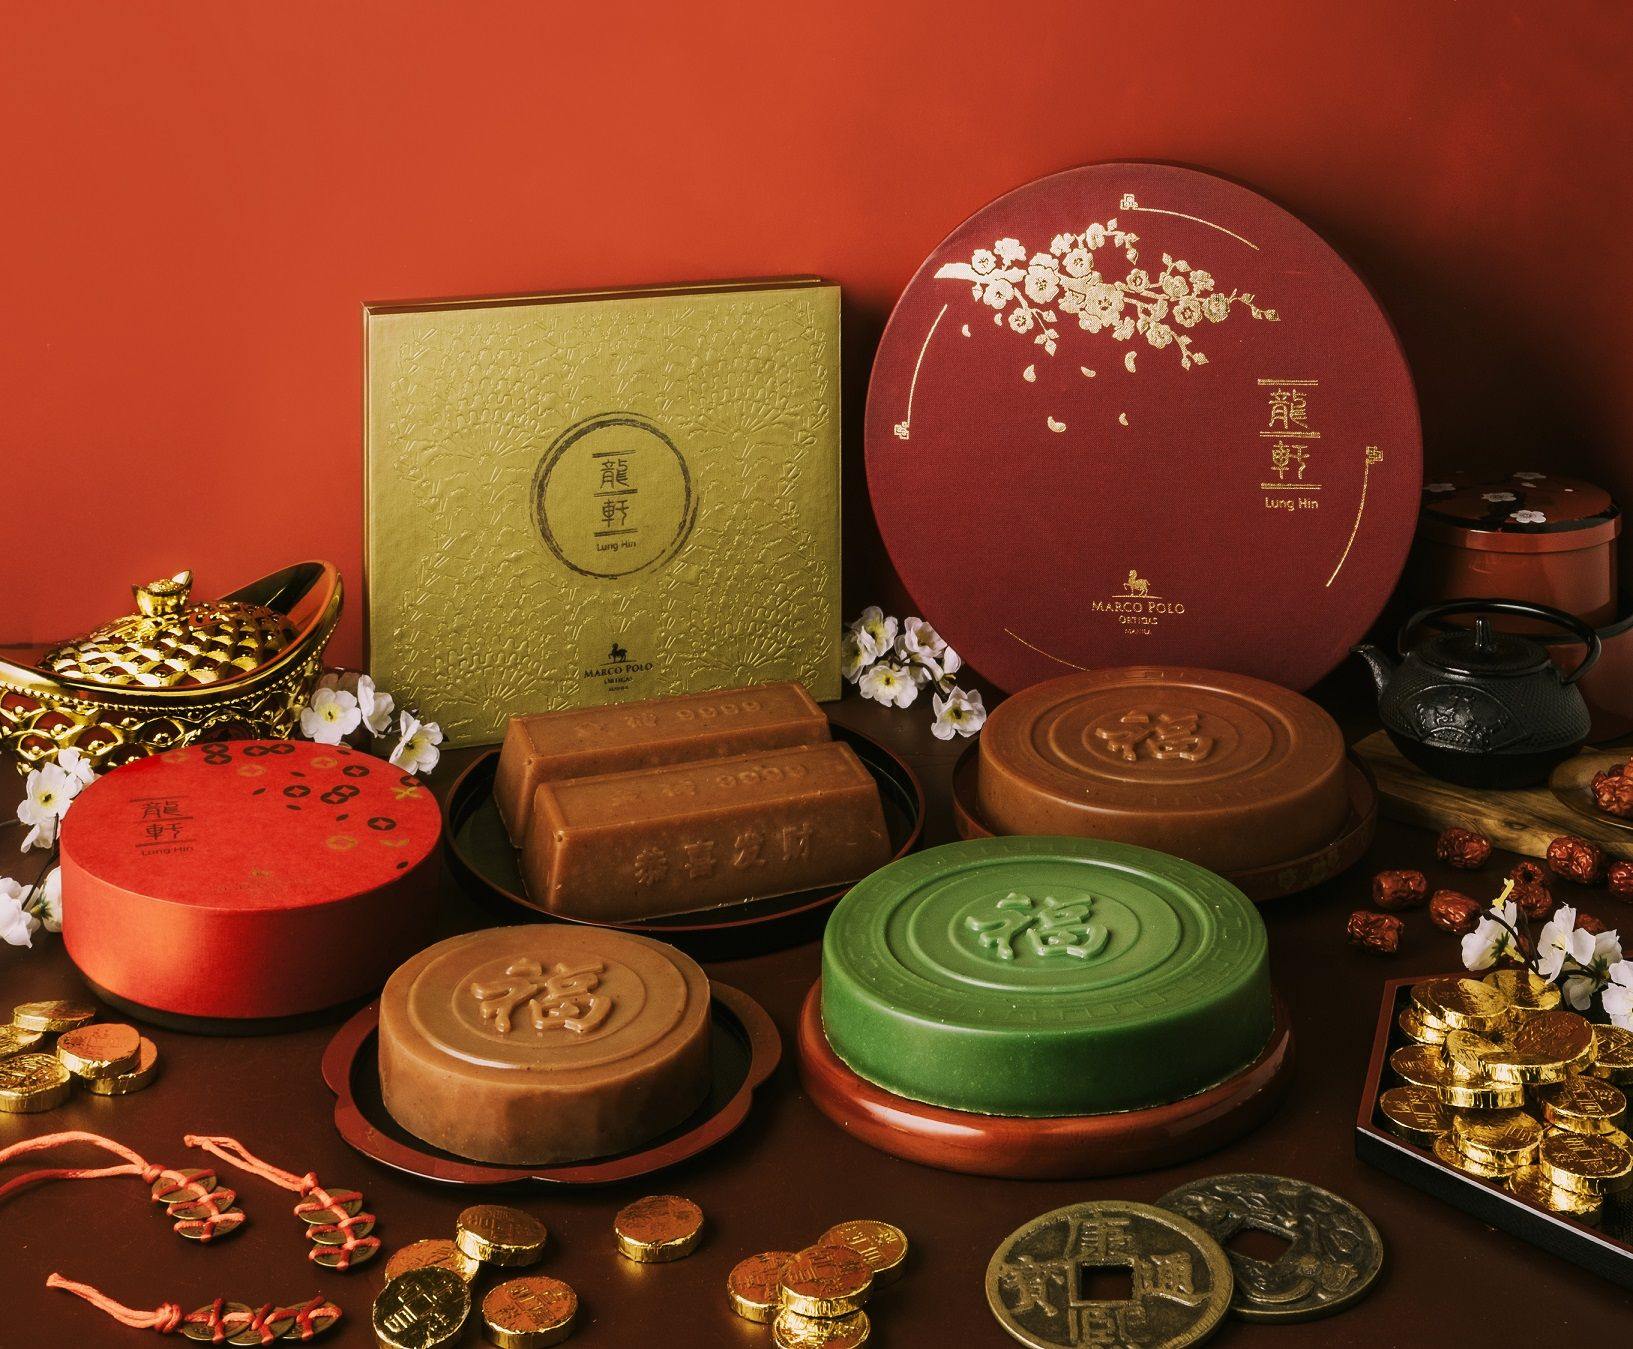 Lung Hin's Nian Gao collection